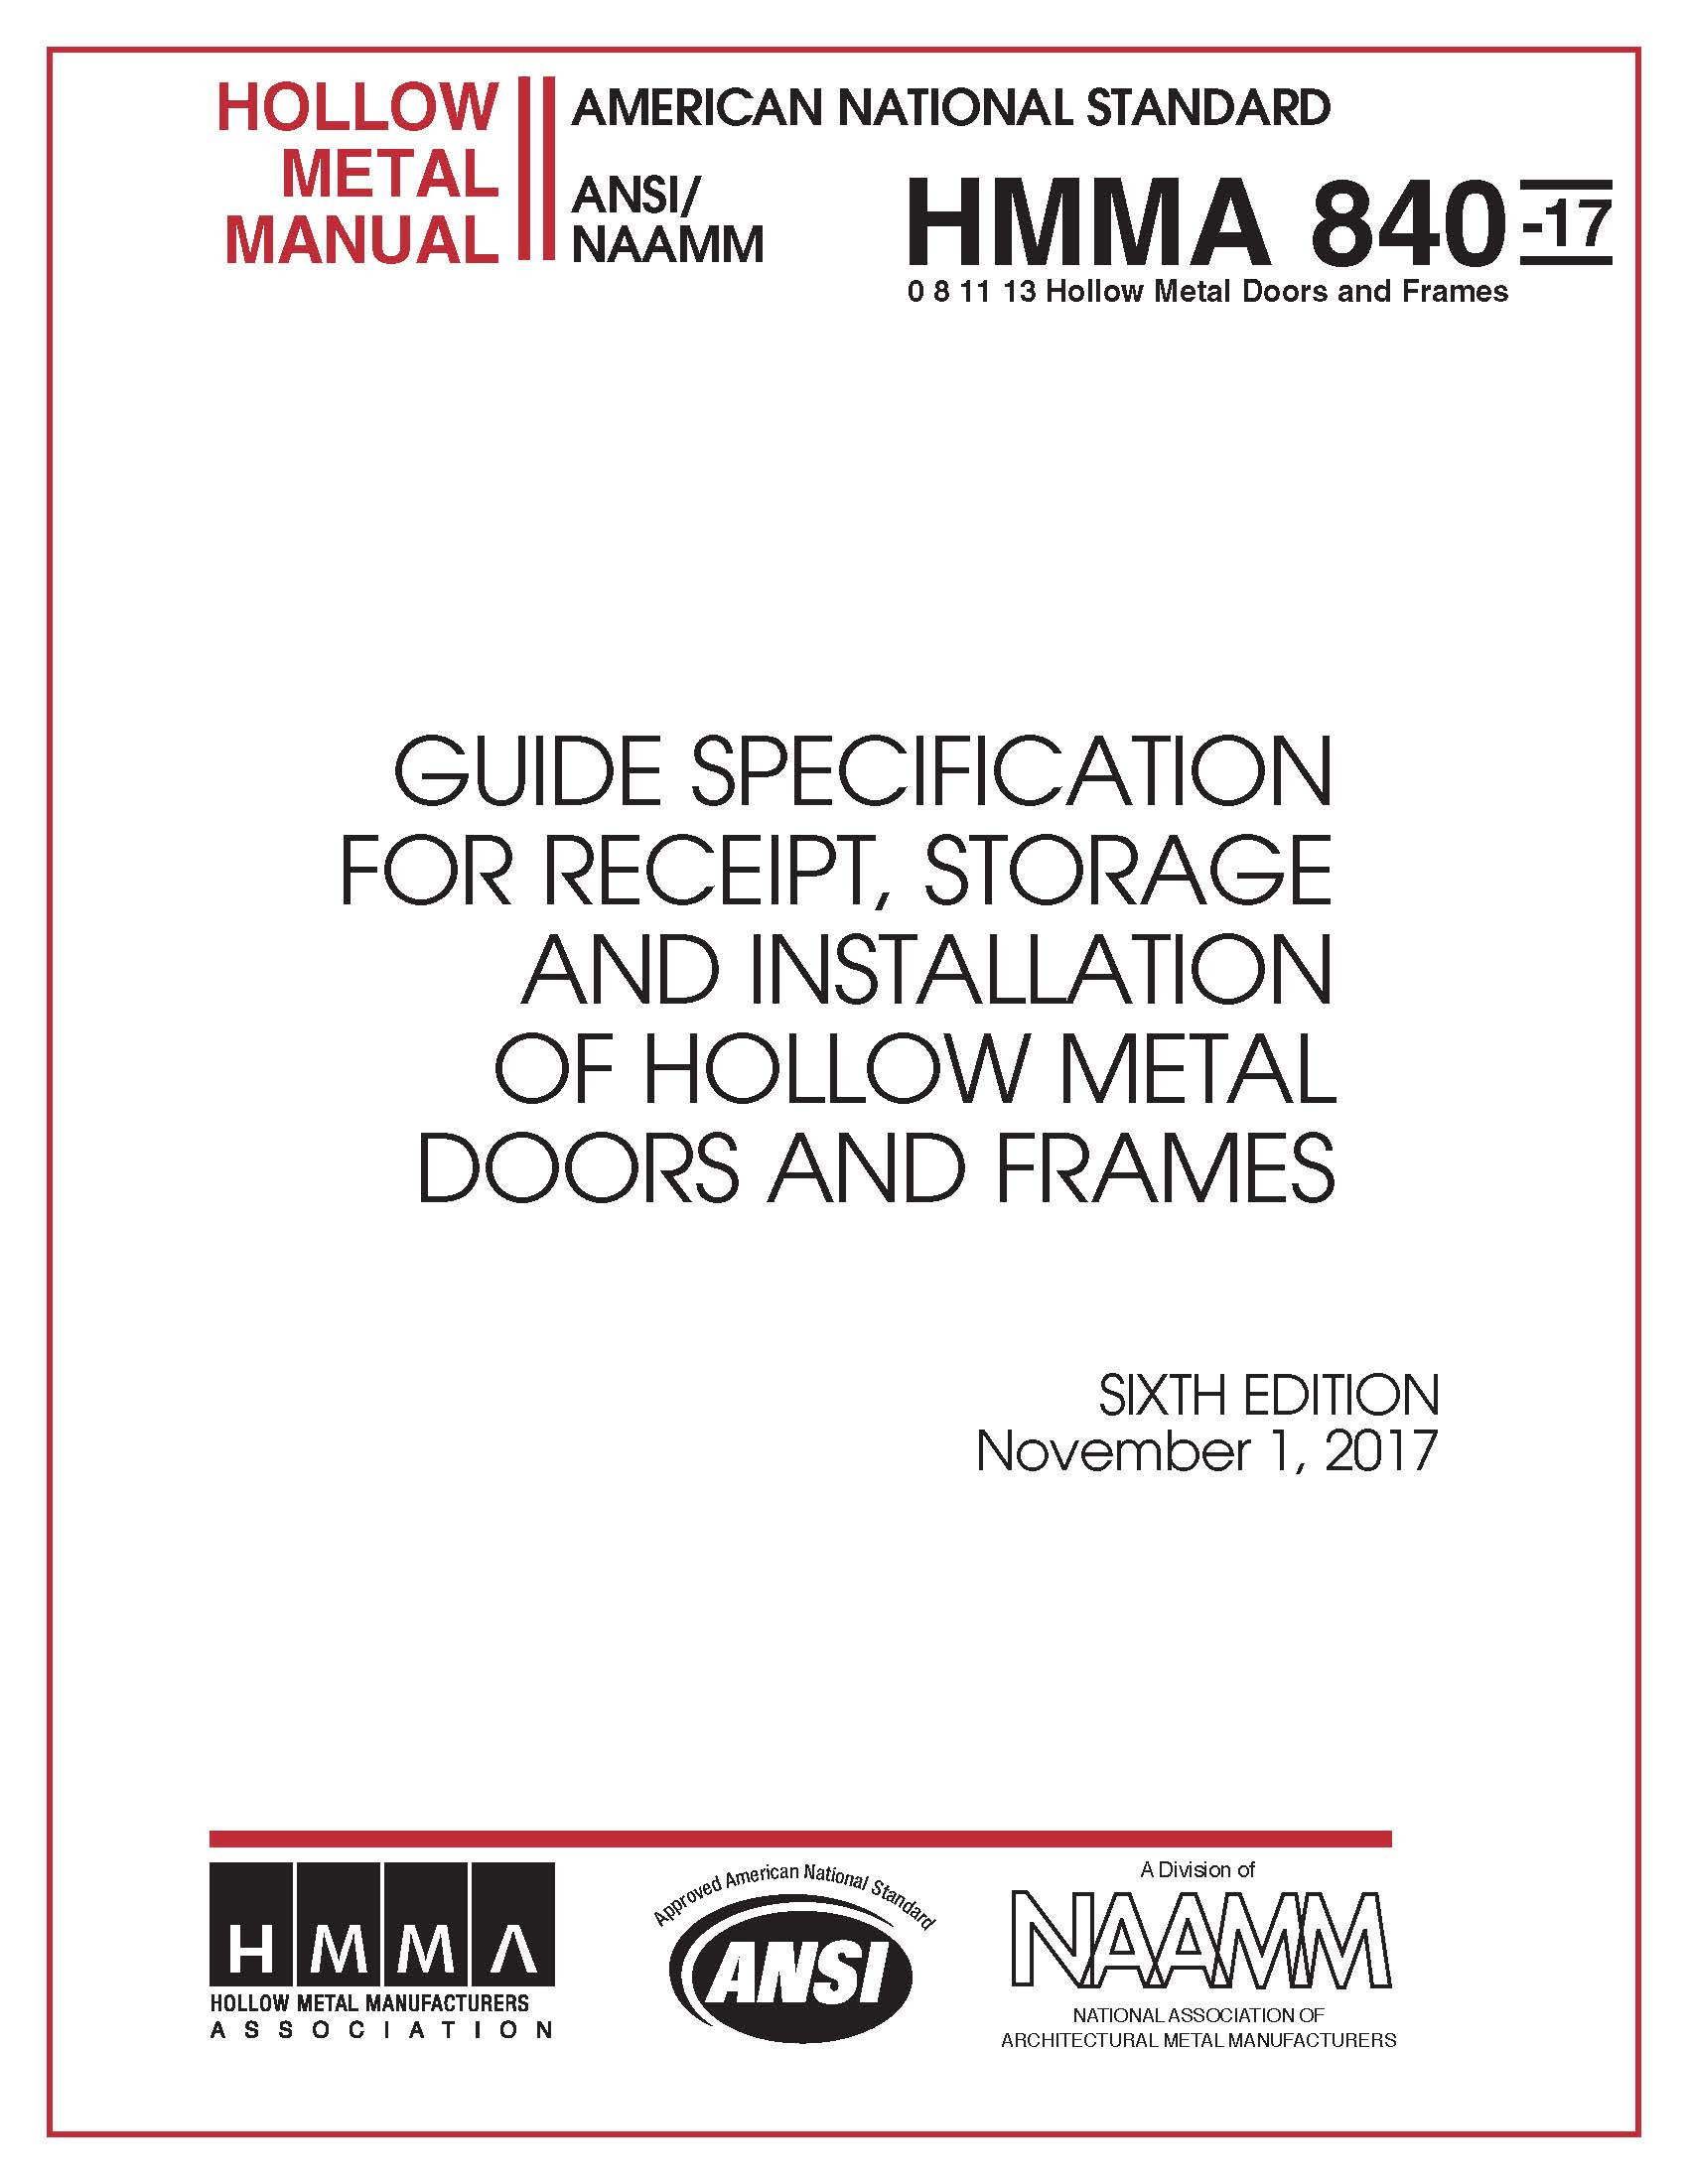 HMMA National Association of Architectural Metal Manufacturers